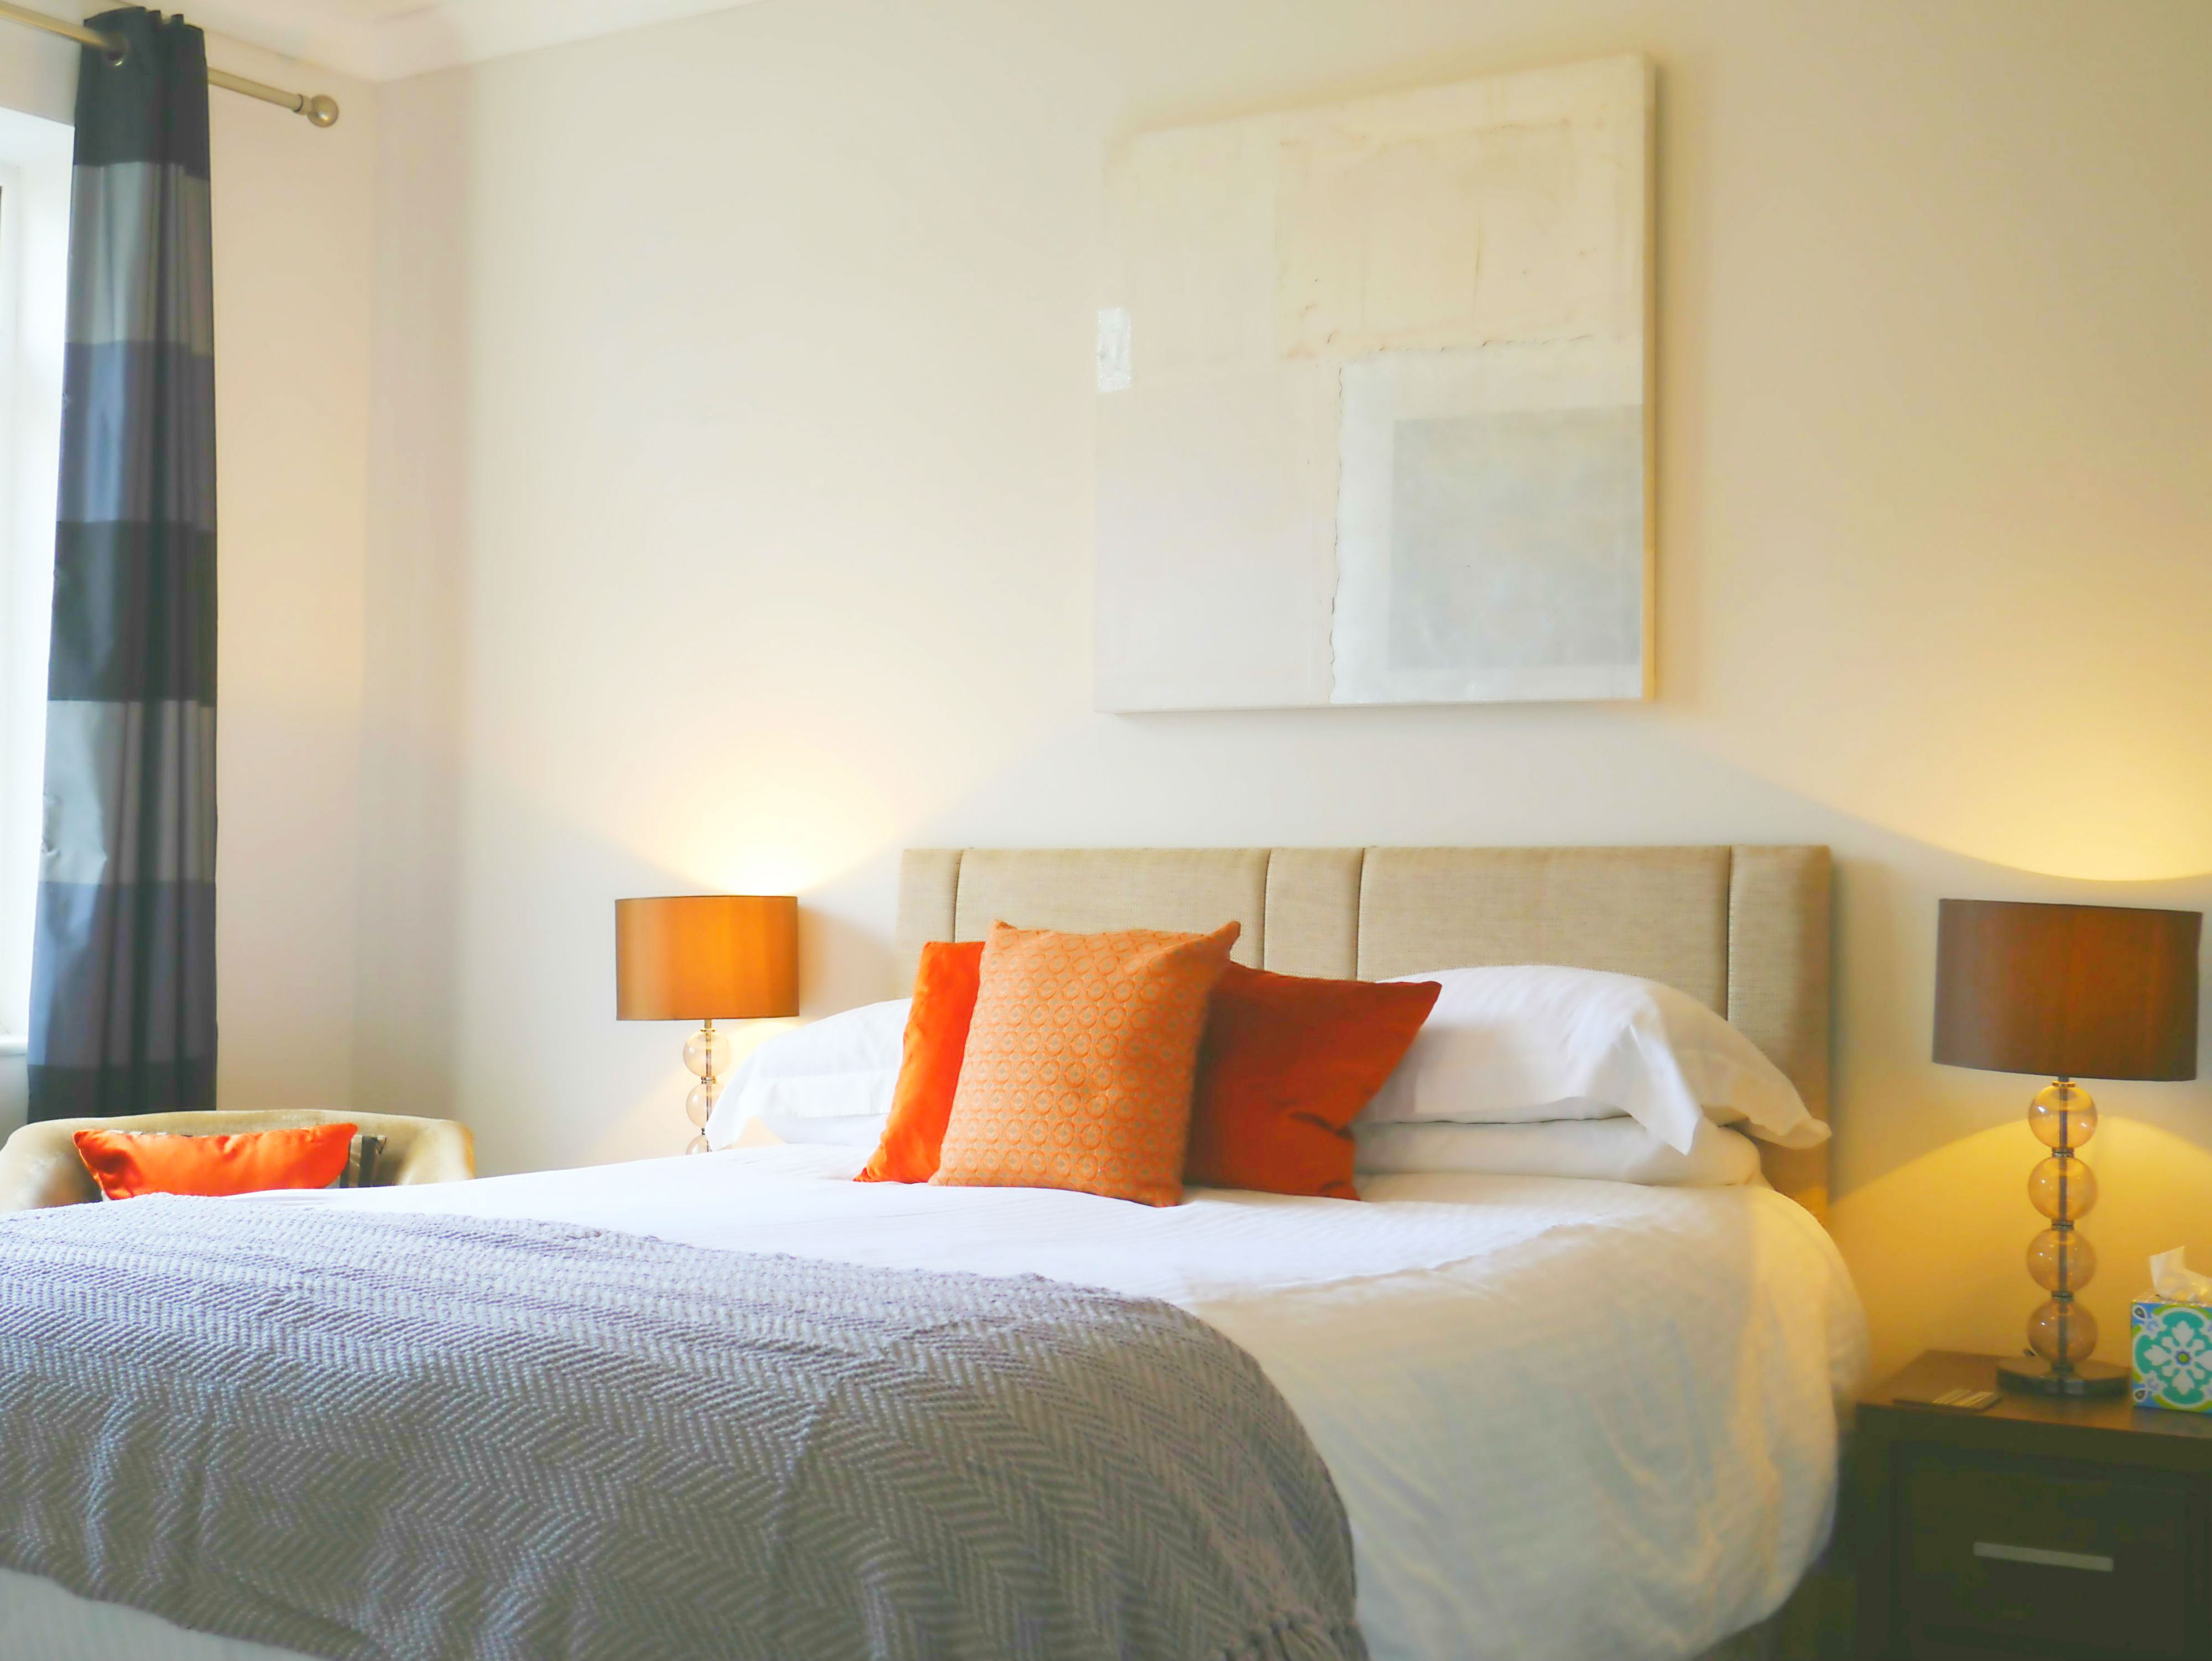 Apartment 5, Bedford House Torquay - self catering accommodation where dogs are welcome.